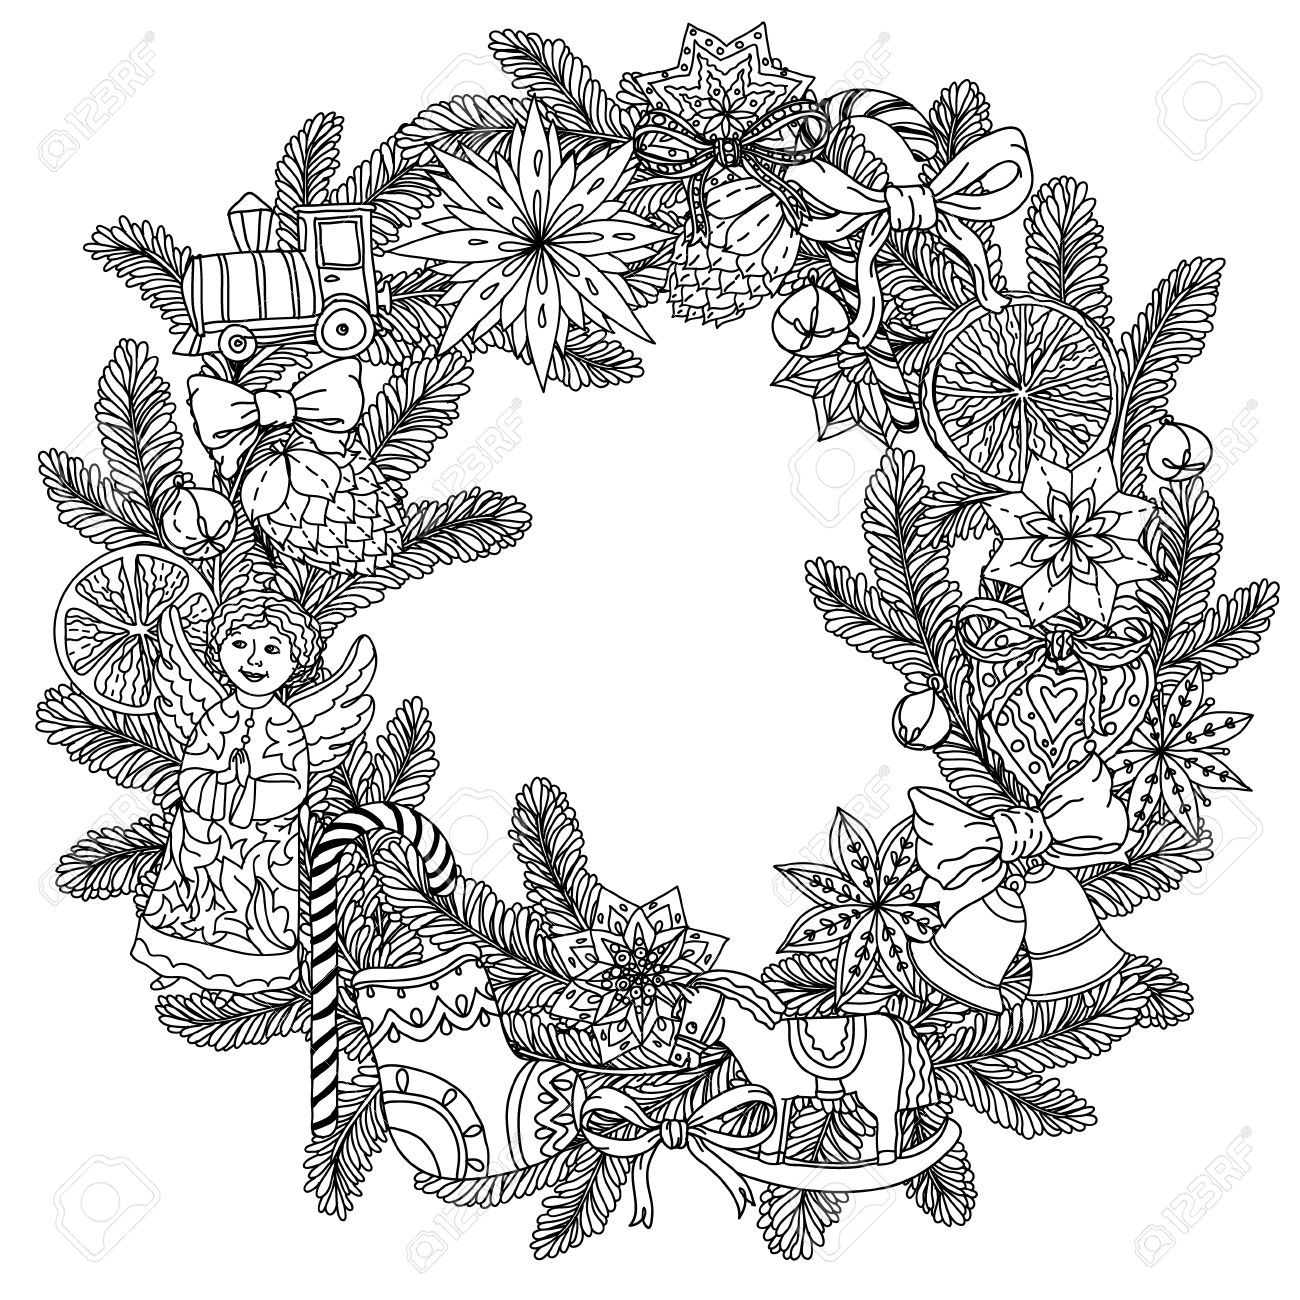 Christmas wreath with decorative items, Black and white. The...